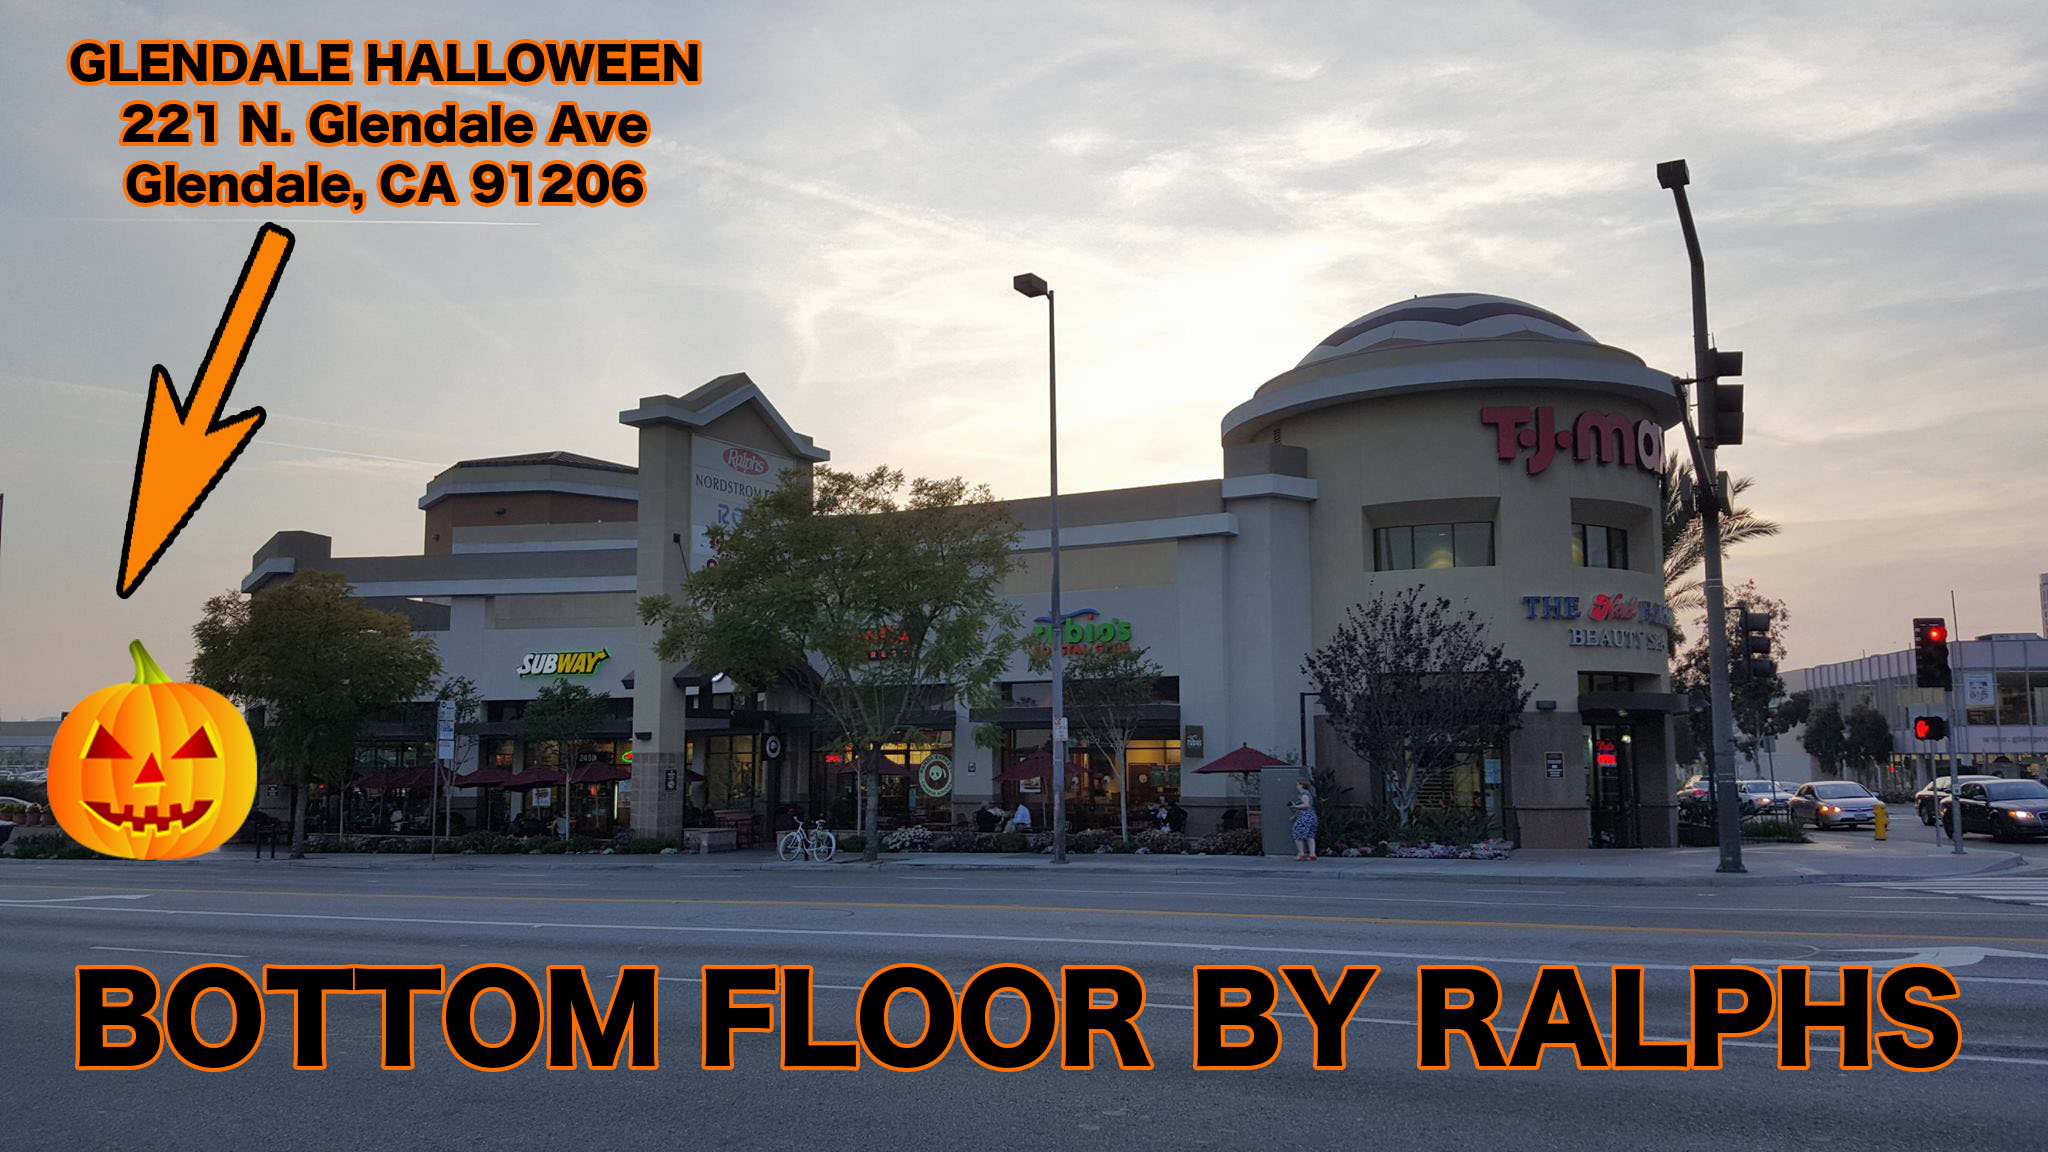 Halloween-Store-Glendale-Fashion-Center-Glendale-Ave